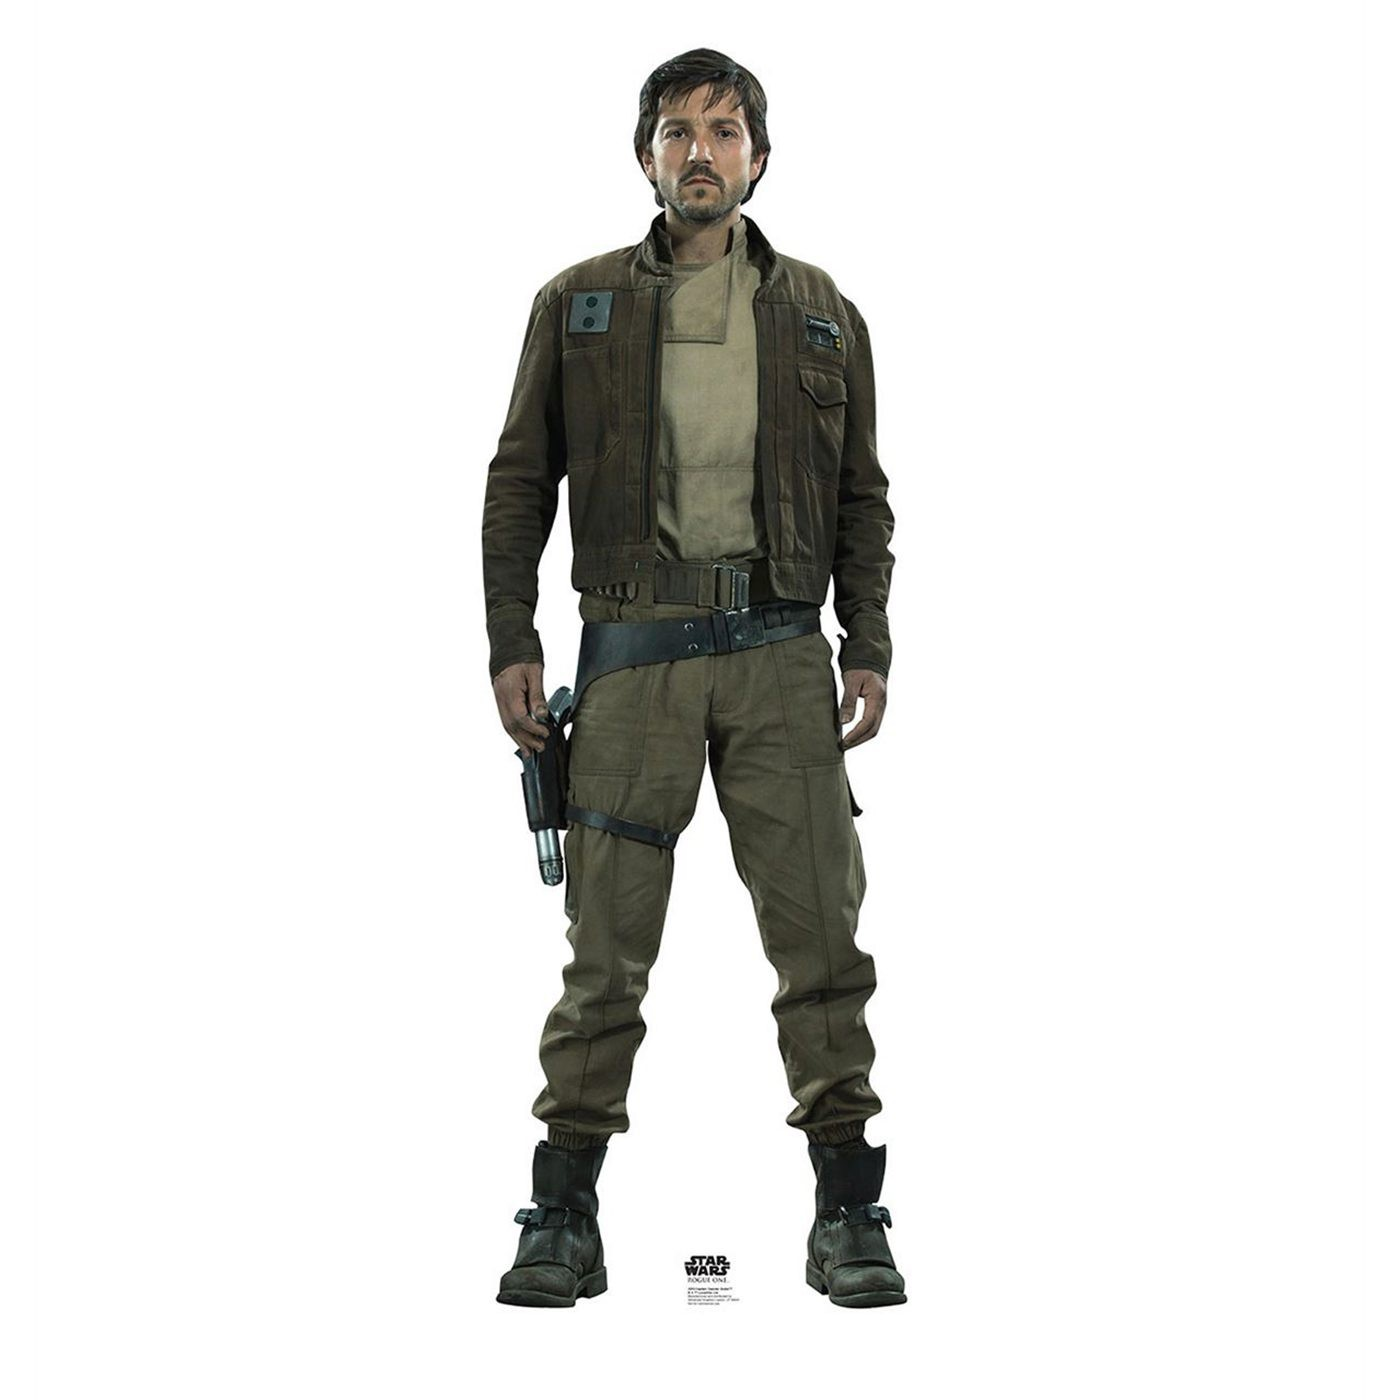 Star Wars Rogue One Captain Cassain Andor Cutout